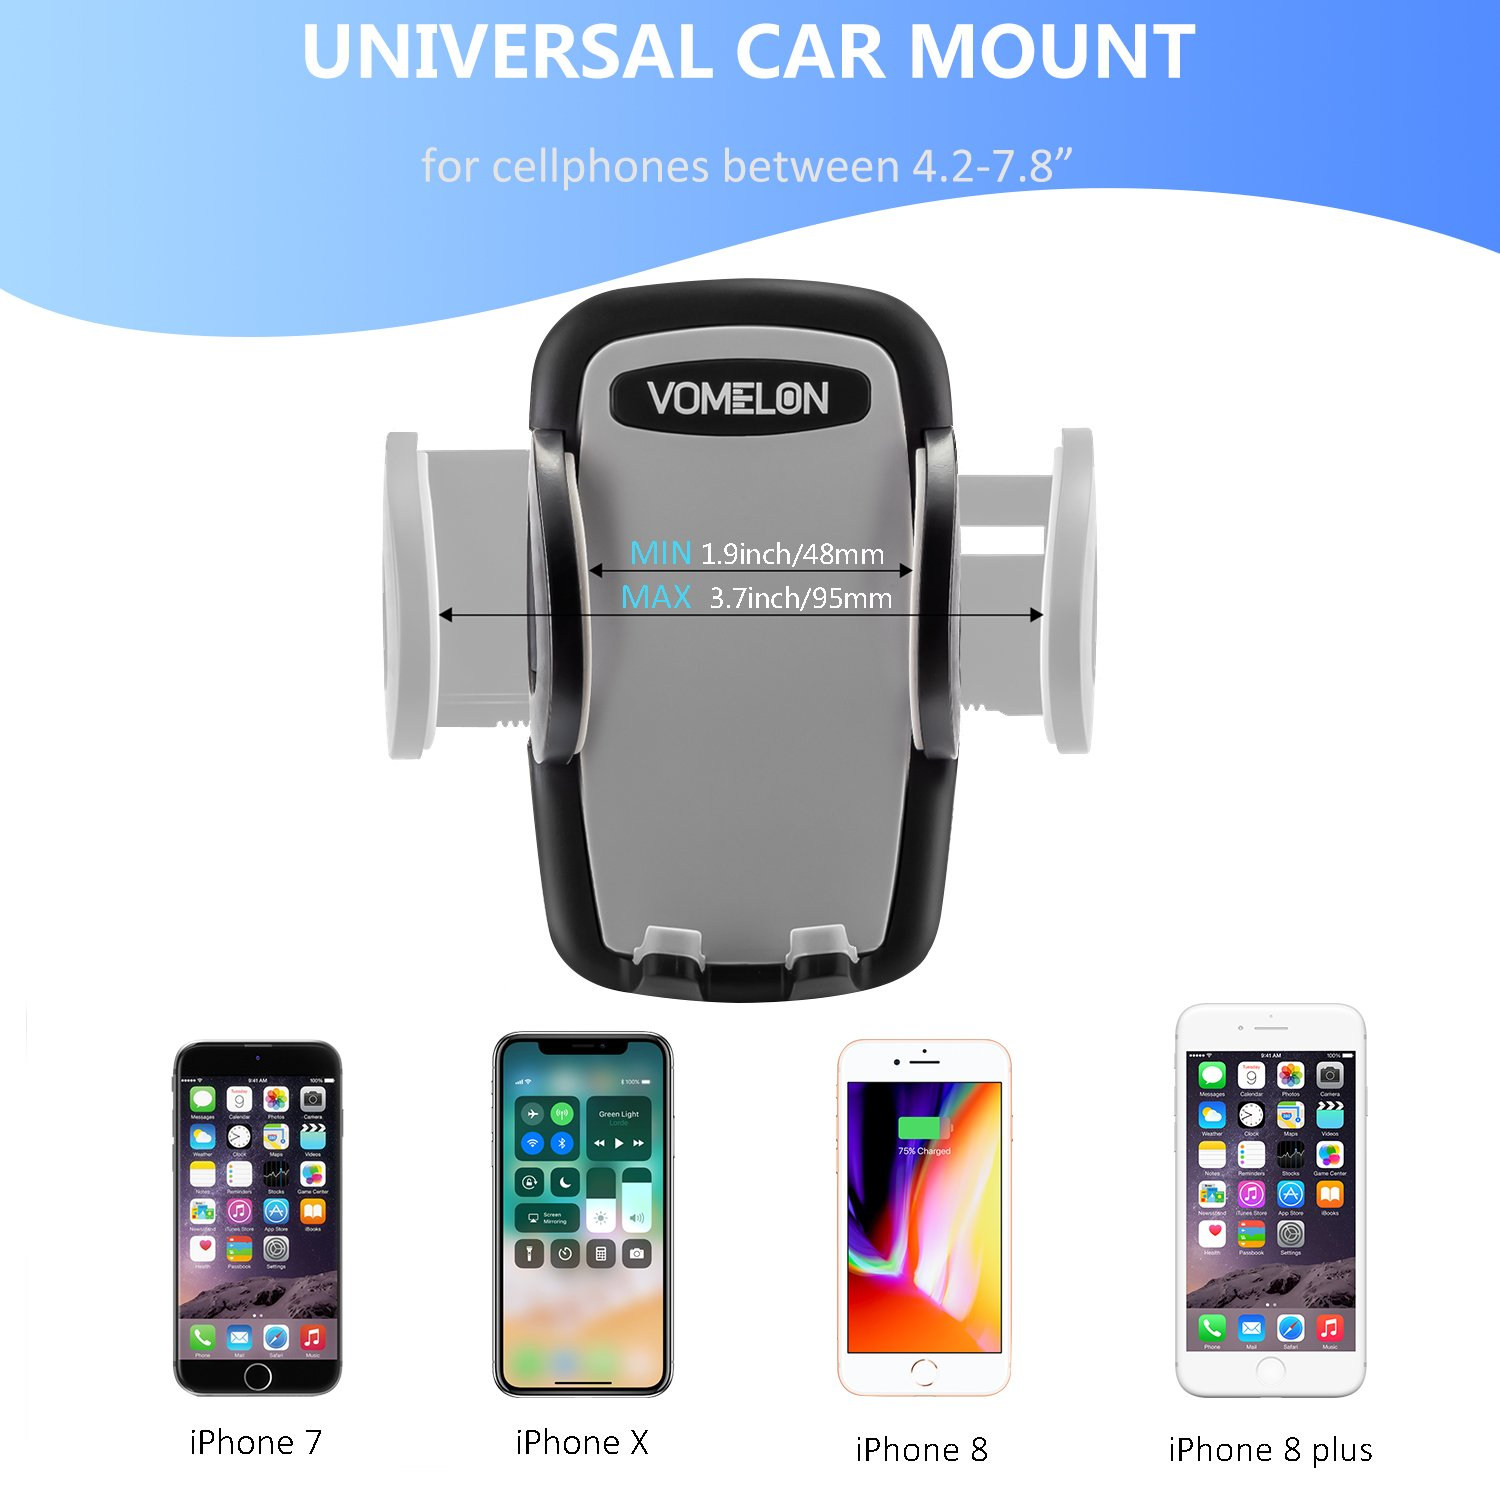 Google Cell Phone Holder for Car Car Mount for iPhone X iPhone 8 8 Plus 7 7 Plus 3-in-1 Car Phone Holder LG Huawei and More Sumsung